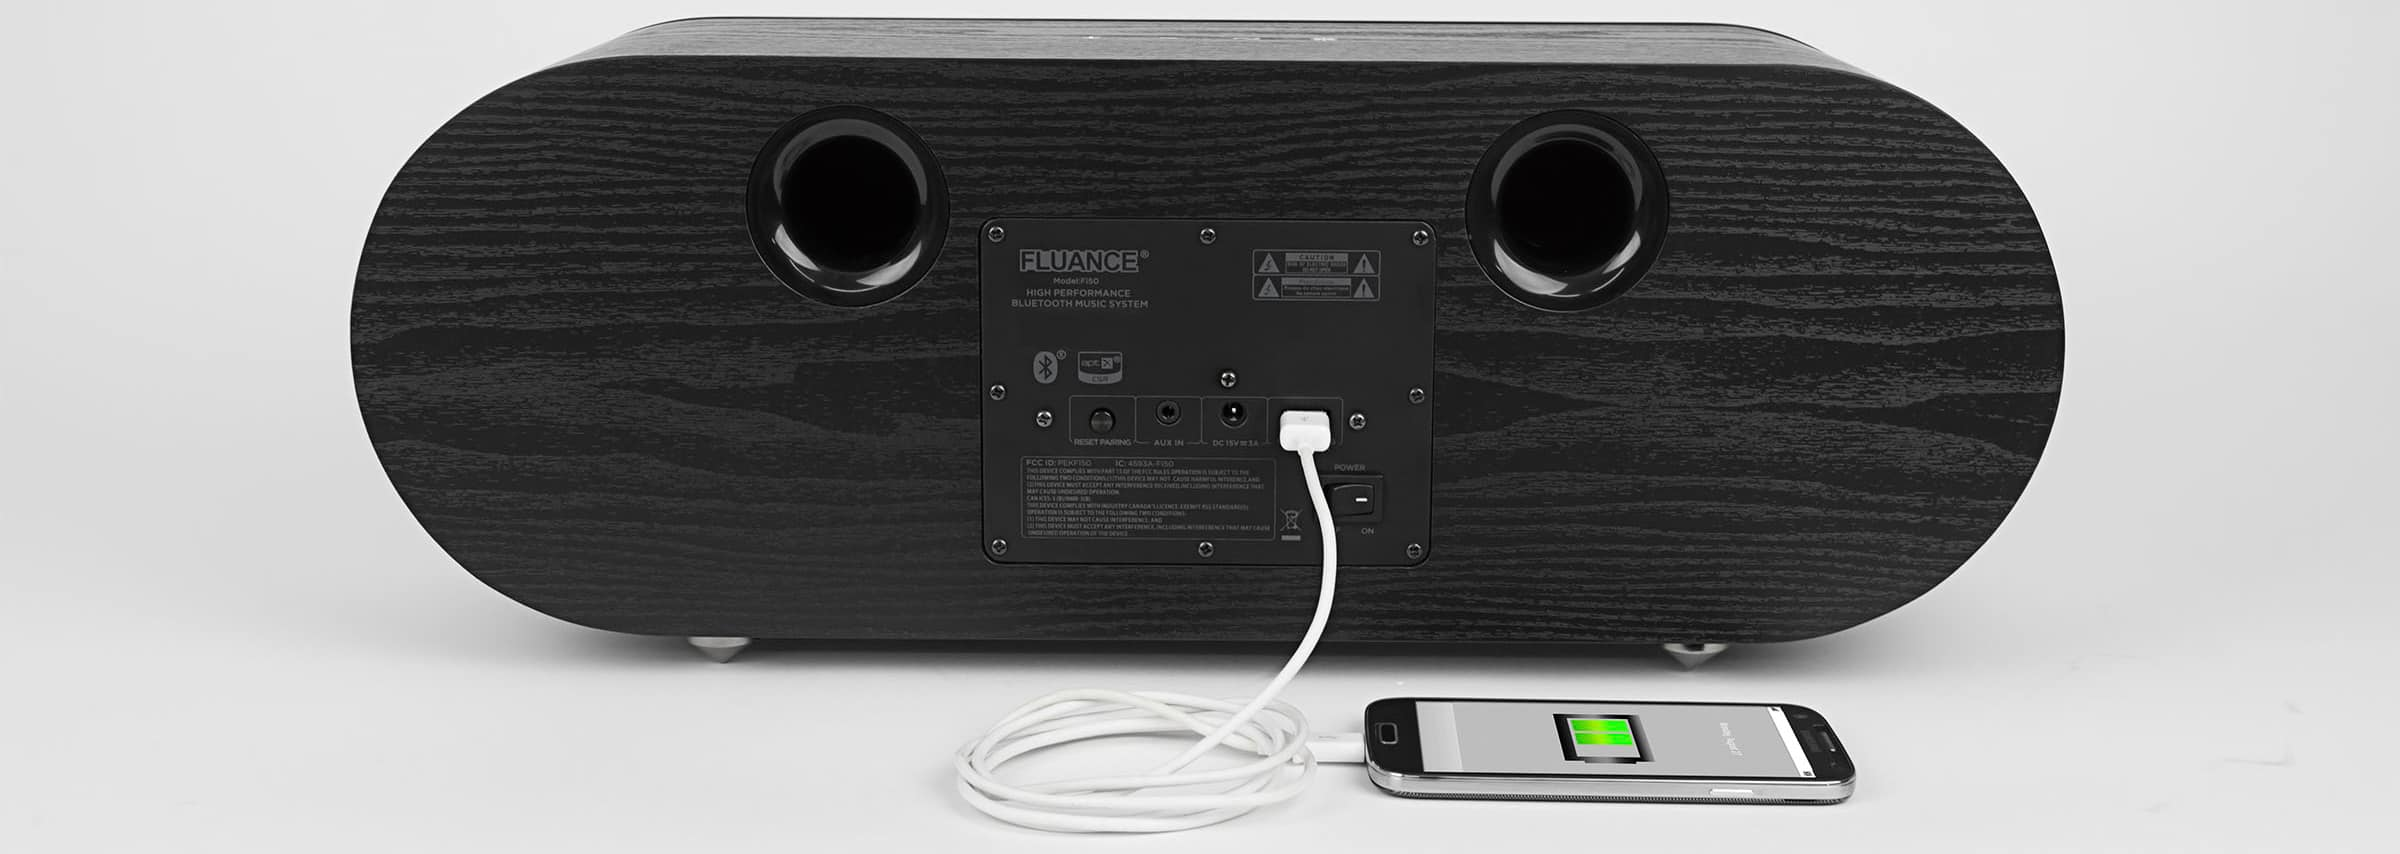 Fluance Fi50 Two-Way High Performance Wireless Bluetooth Wood Speaker System for $99.96 after coupon + Free shipping